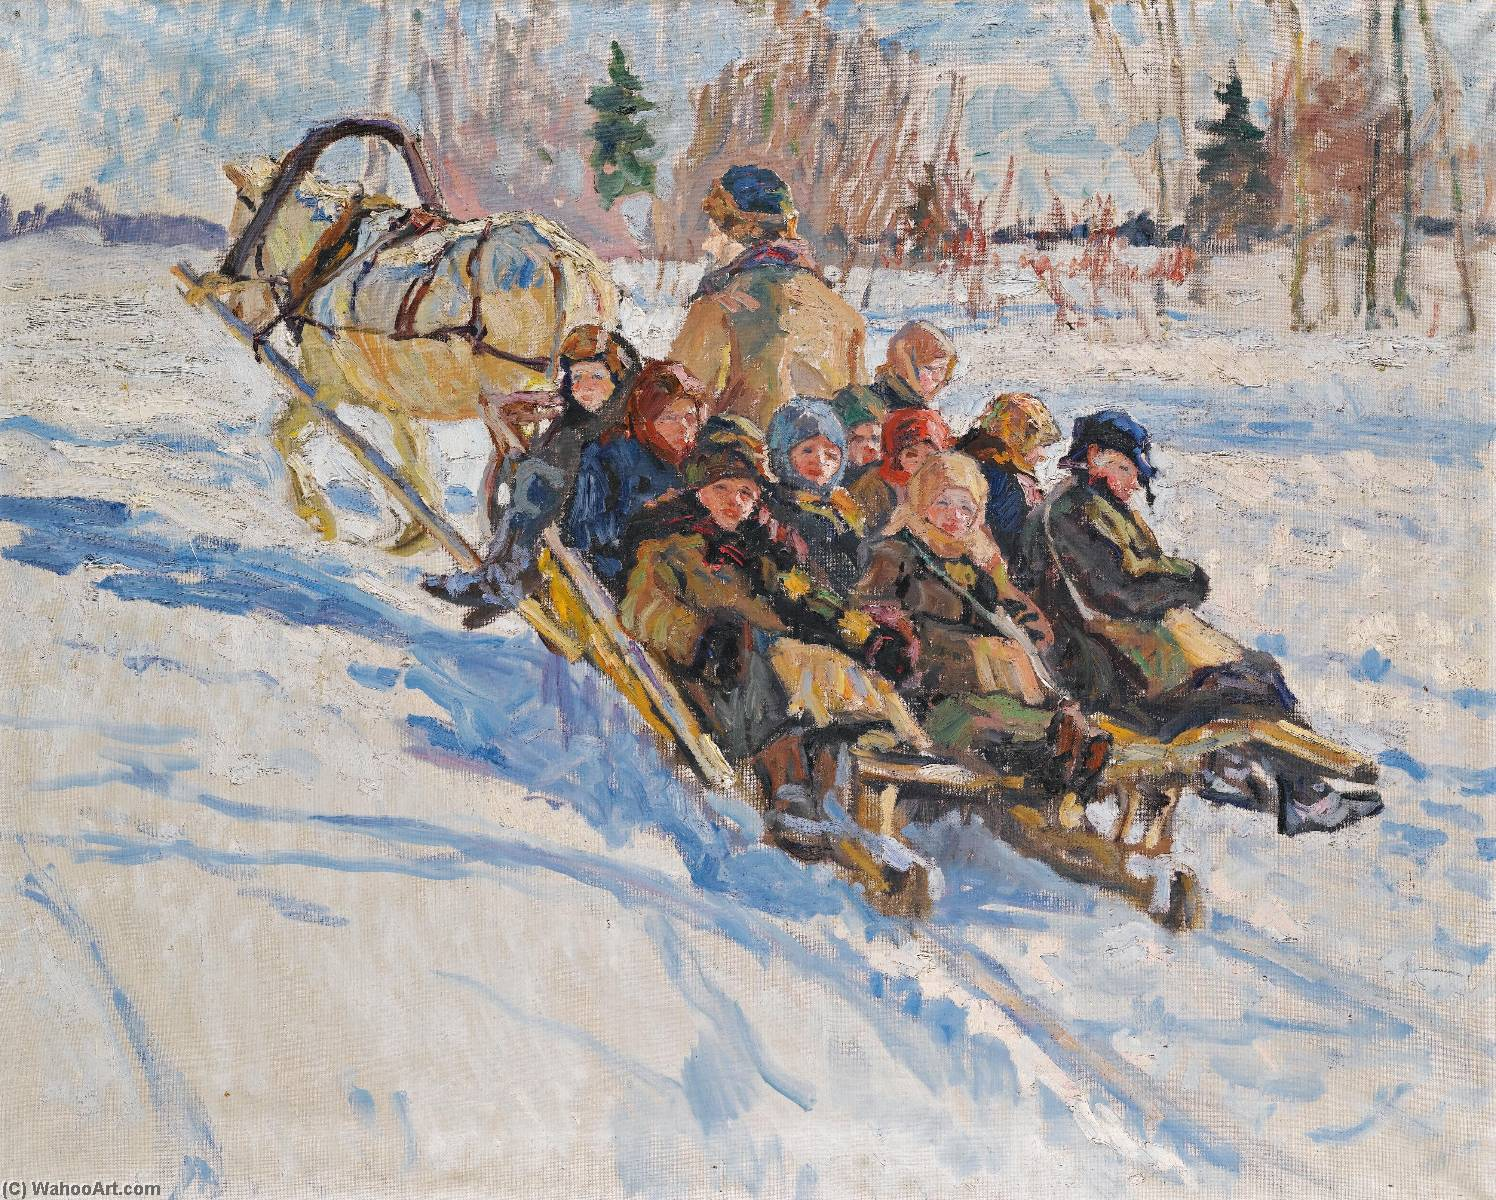 Children Riding in a Sleigh by Nikolai Petrovich Bogdanov Belsky | Painting Copy | WahooArt.com